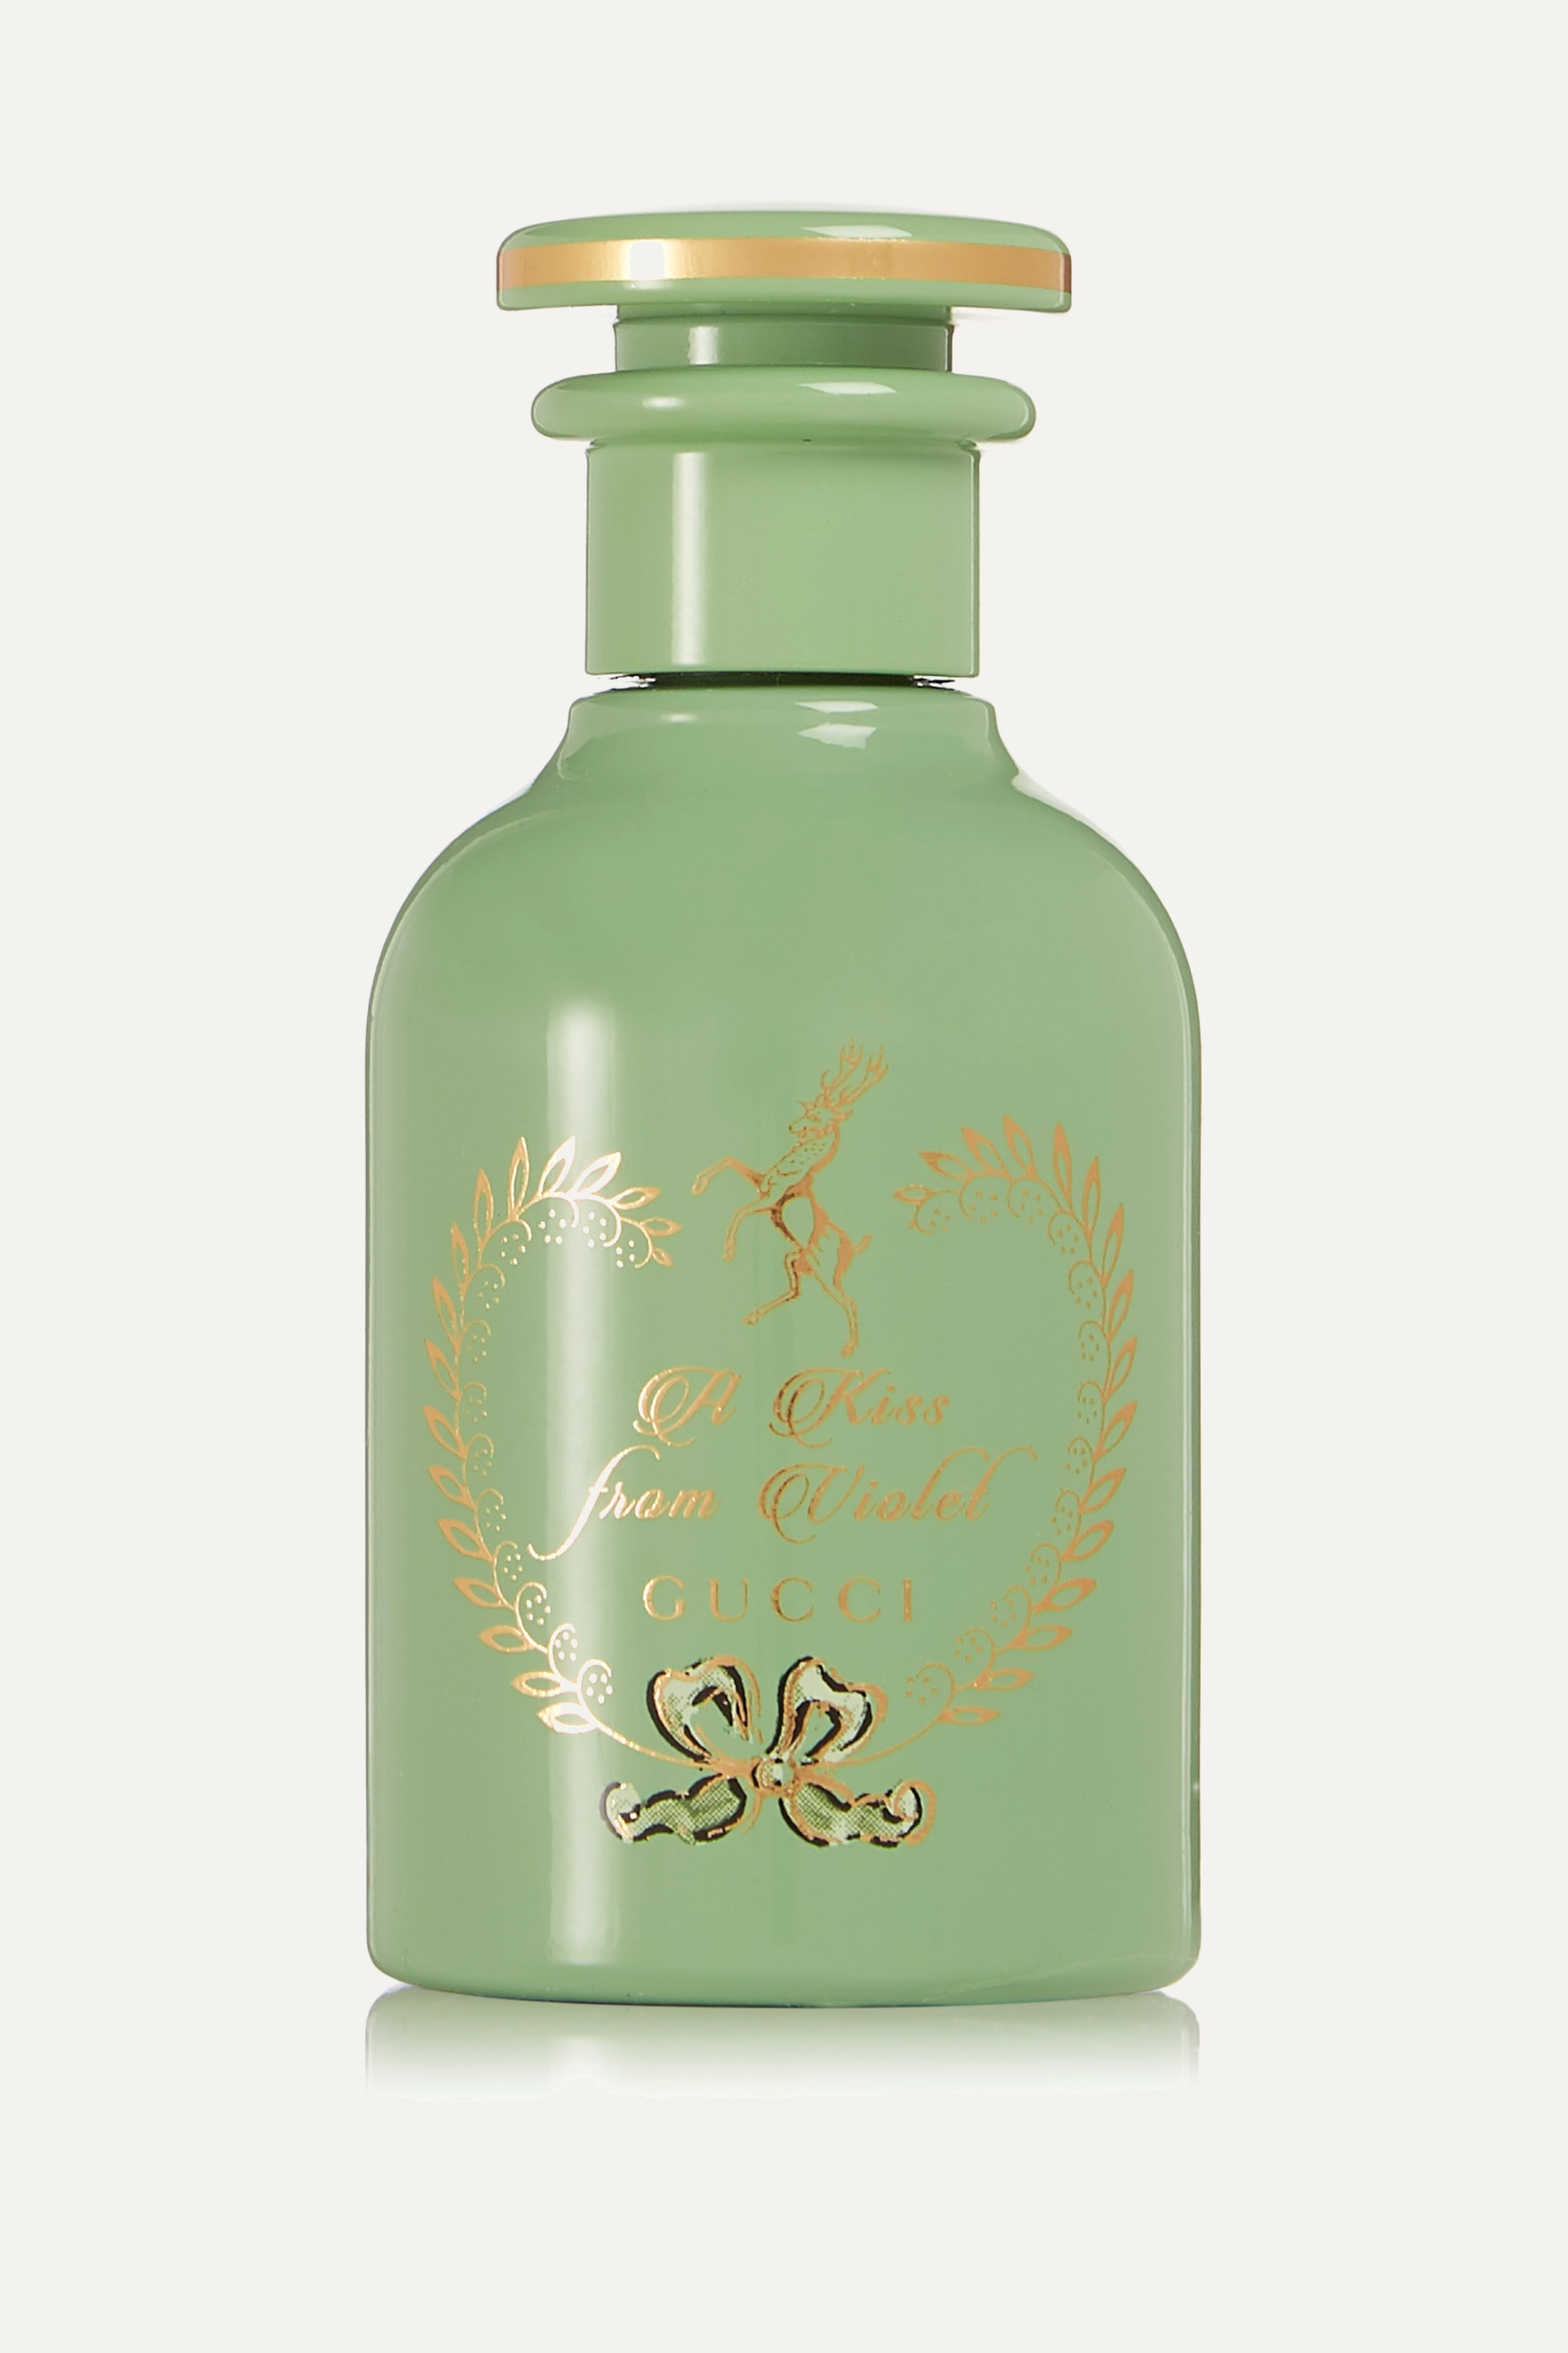 Gucci Beauty Gucci: The Alchemist's Garden - A Kiss From Violet Perfume Oil, 20ml